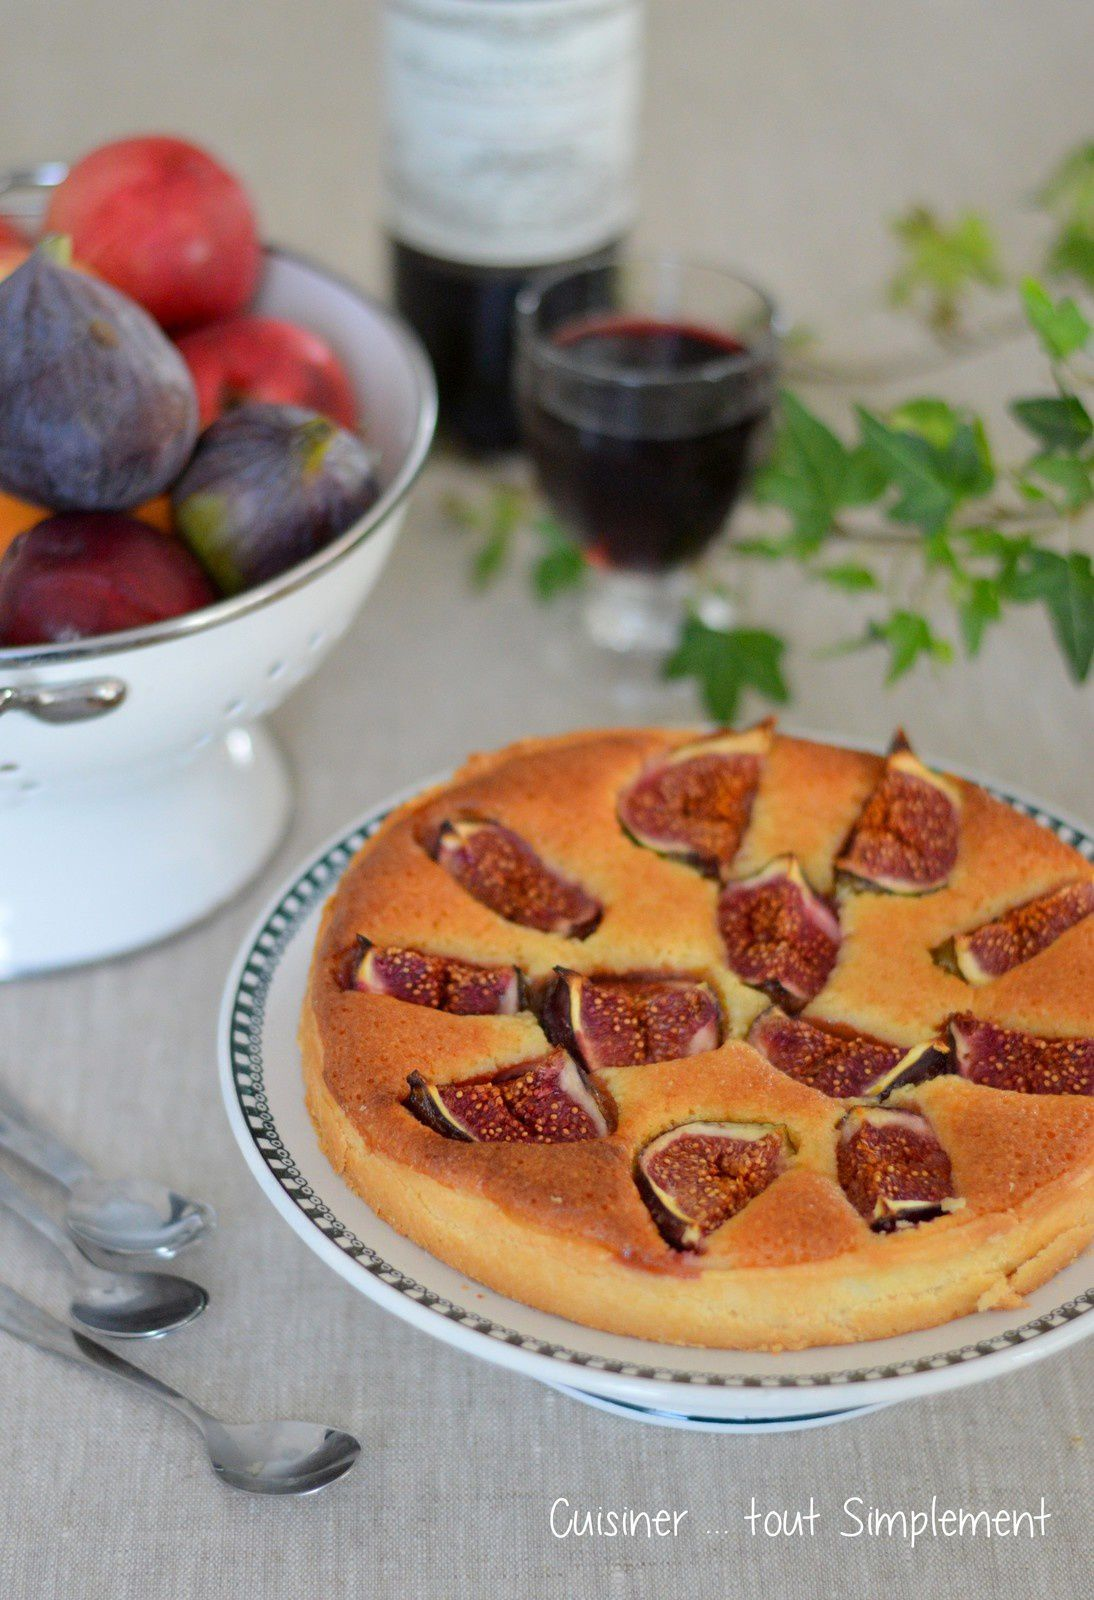 tarte amandine aux figues cuisiner tout simplement le blog de cuisine de nathalie. Black Bedroom Furniture Sets. Home Design Ideas